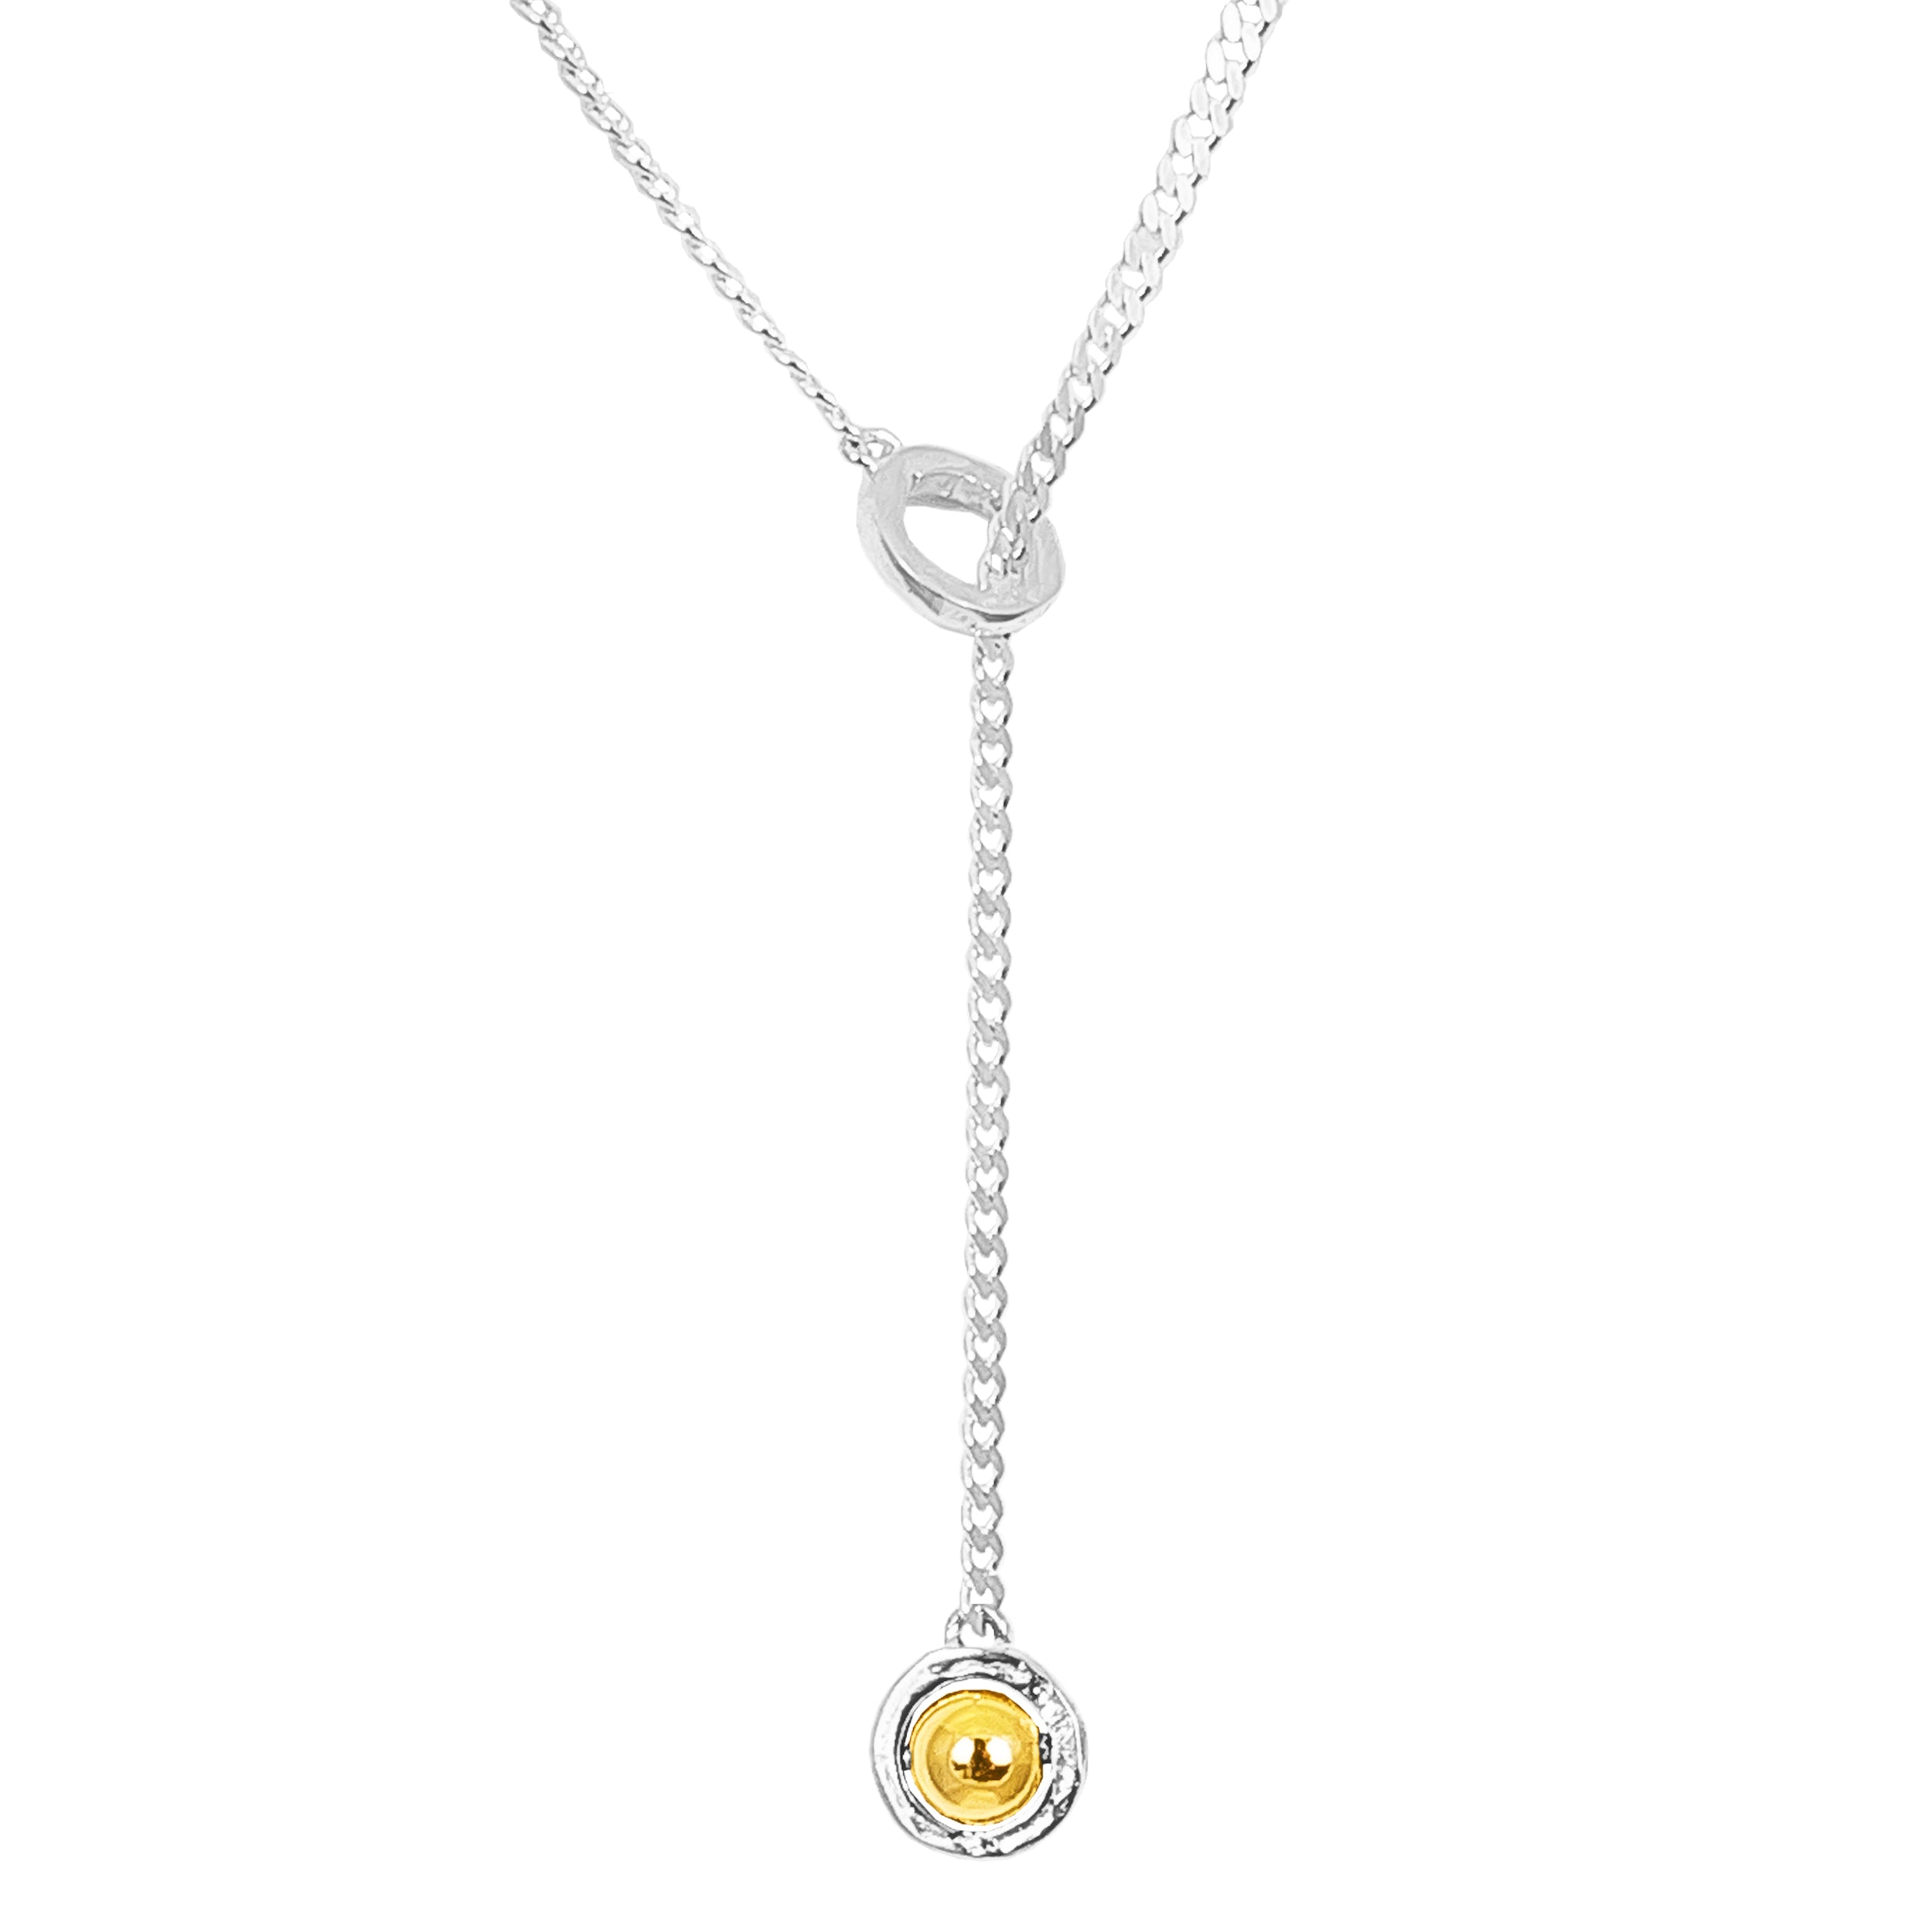 Atticus Medium Charm Lariet Necklace | Polished Gold Detail